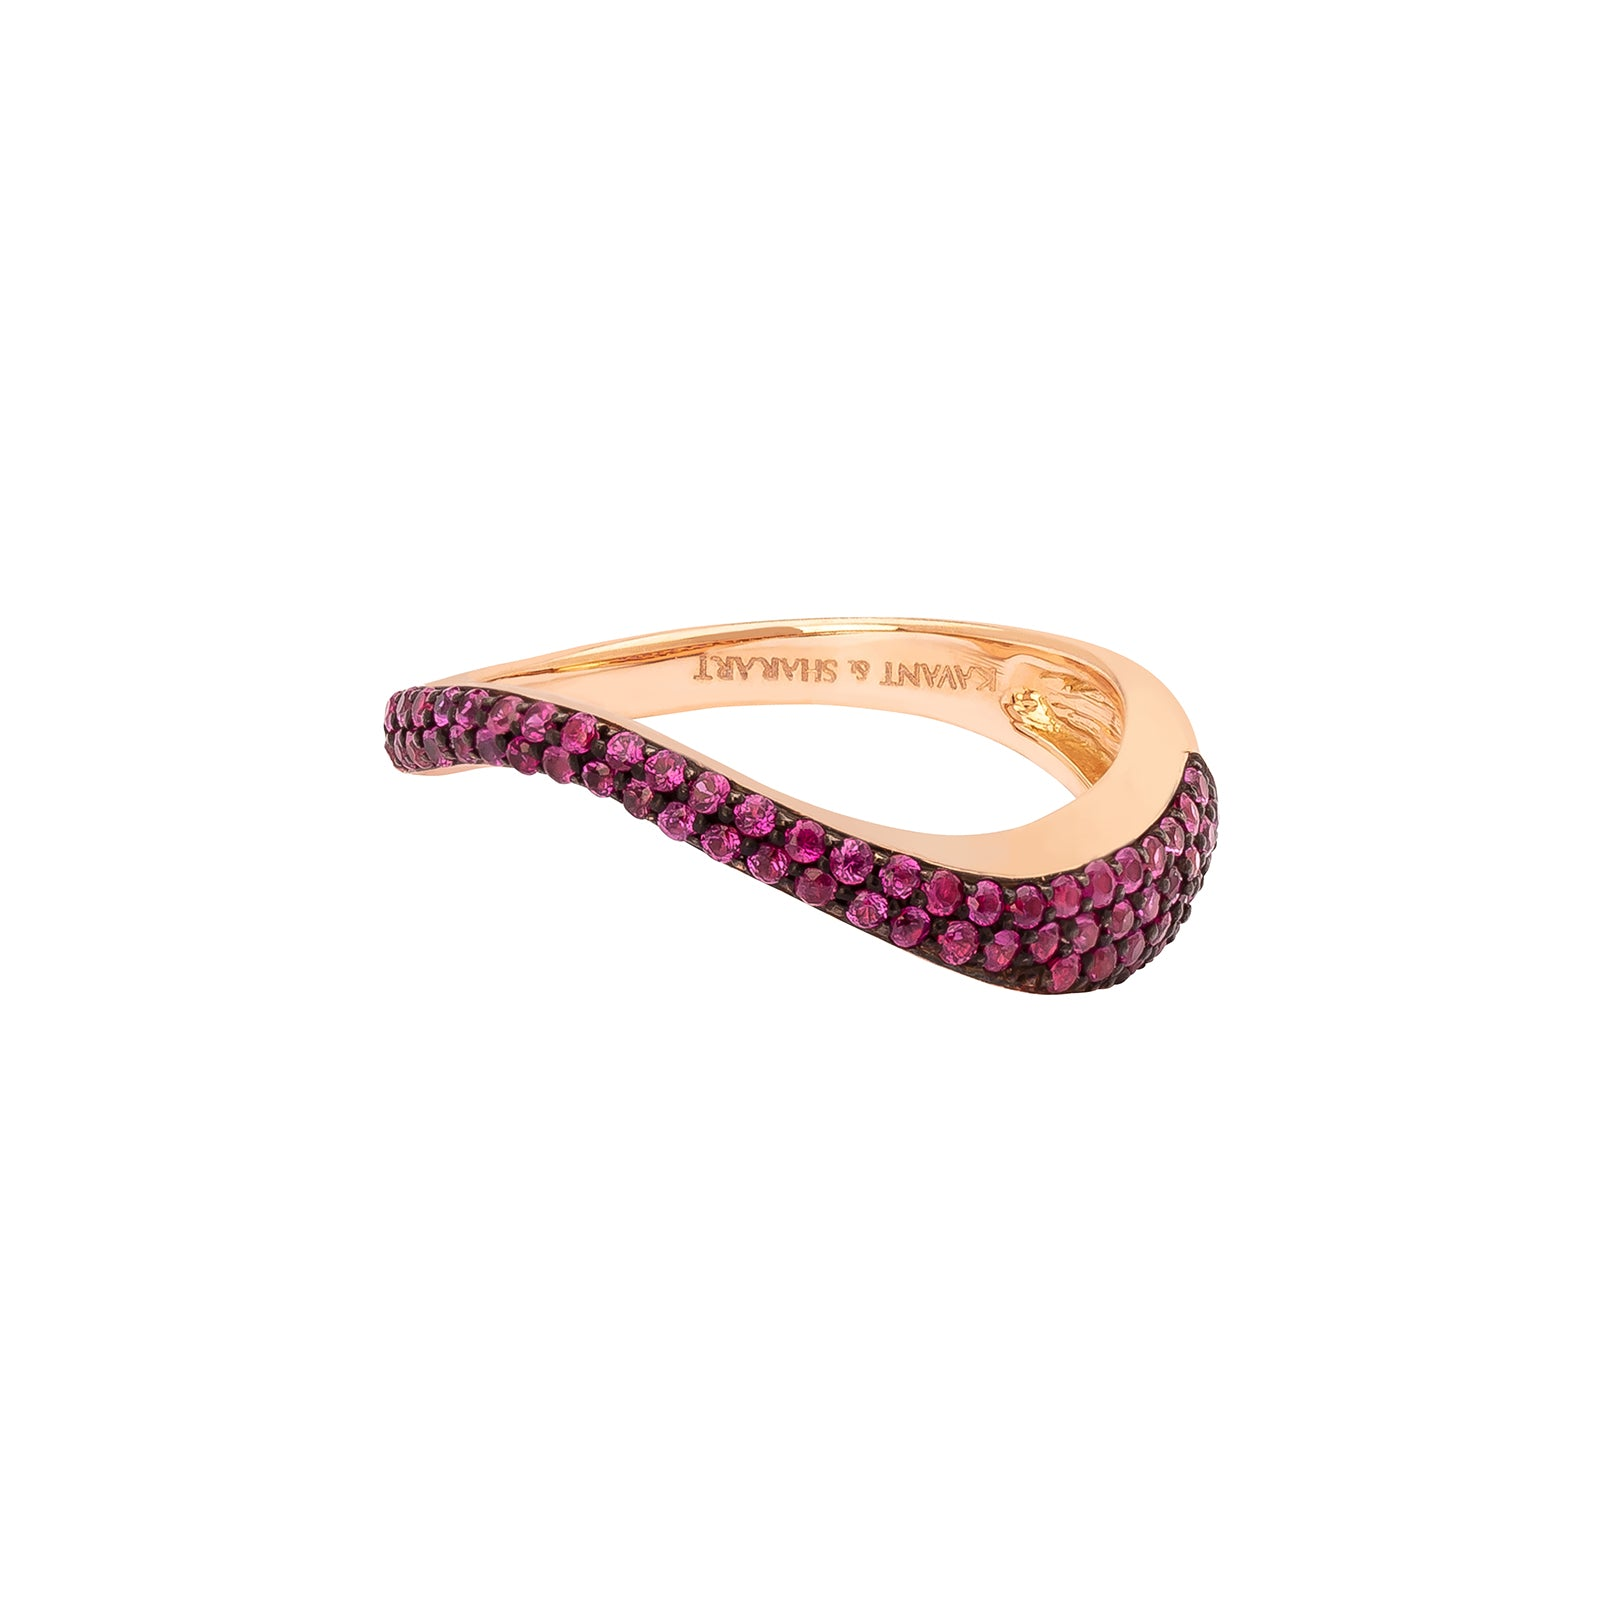 Kavant & Sharart Talay Flow Wave Ring - Ruby - Rings - Broken English Jewelry